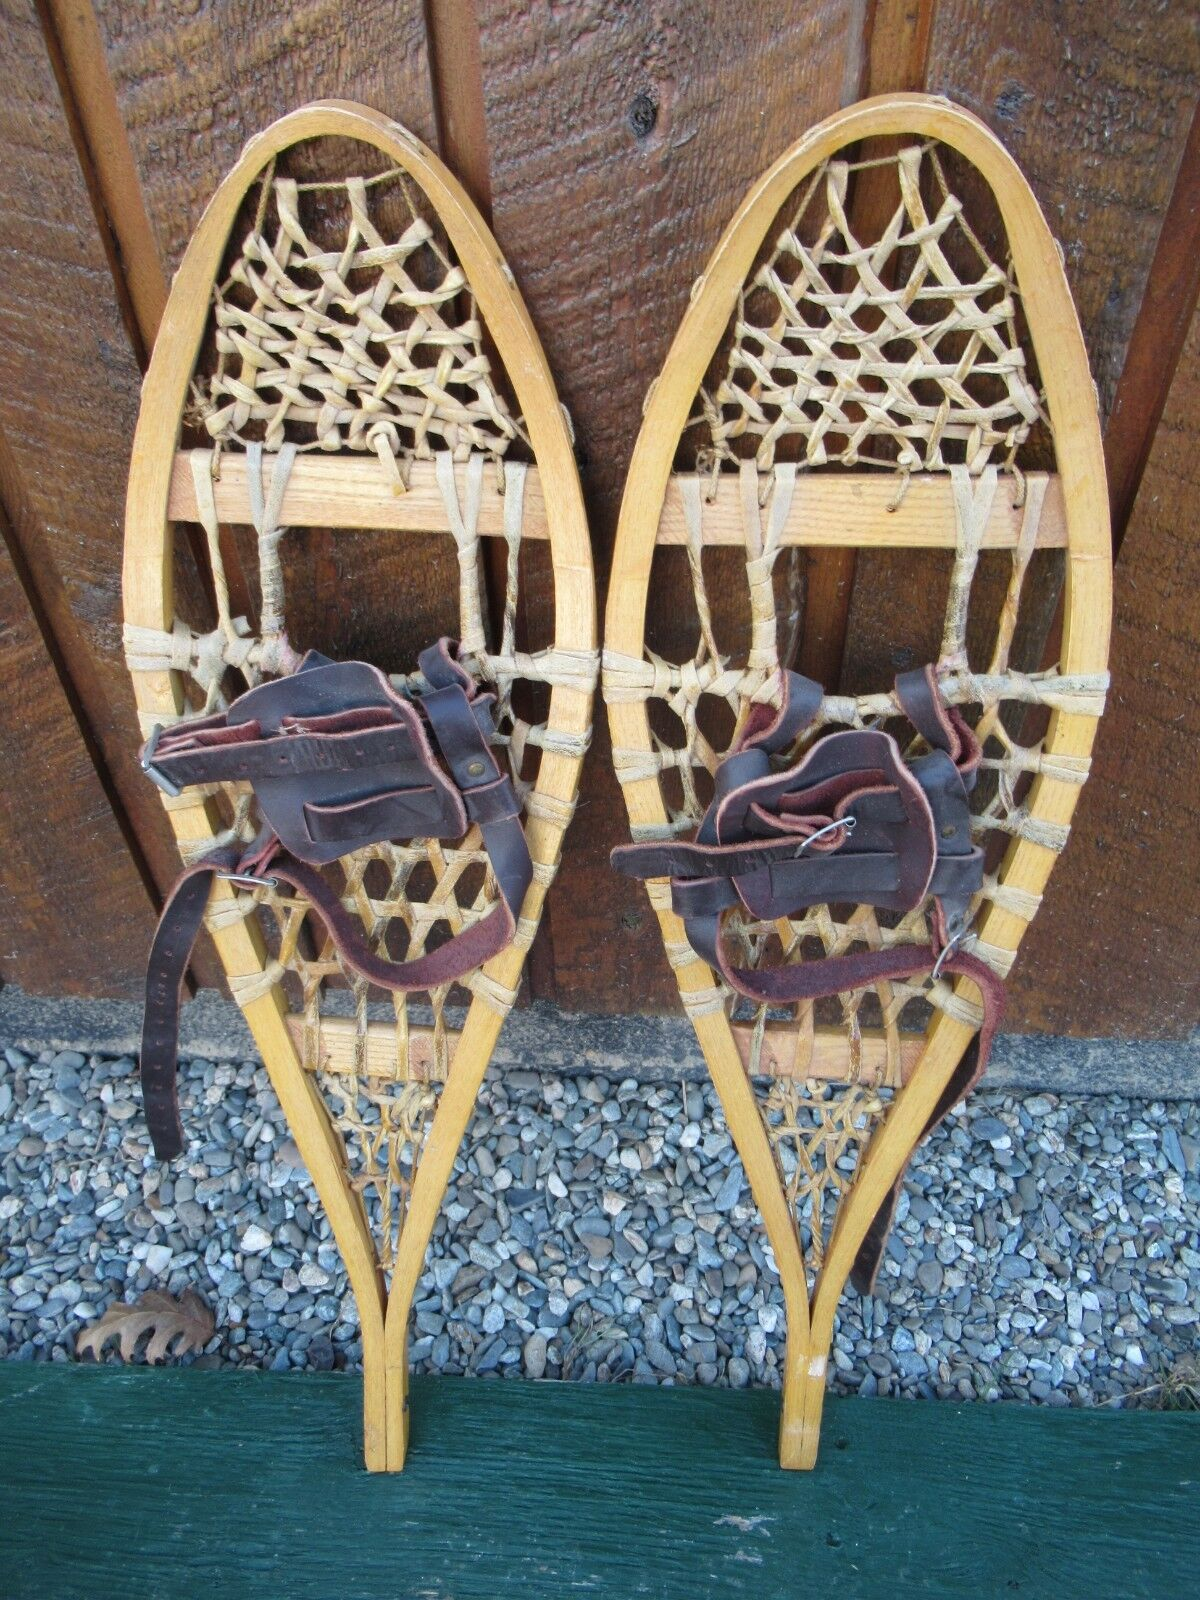 GREAT Snowshoes 29  Long by 8  Wide Leather Bindings Ready to Use